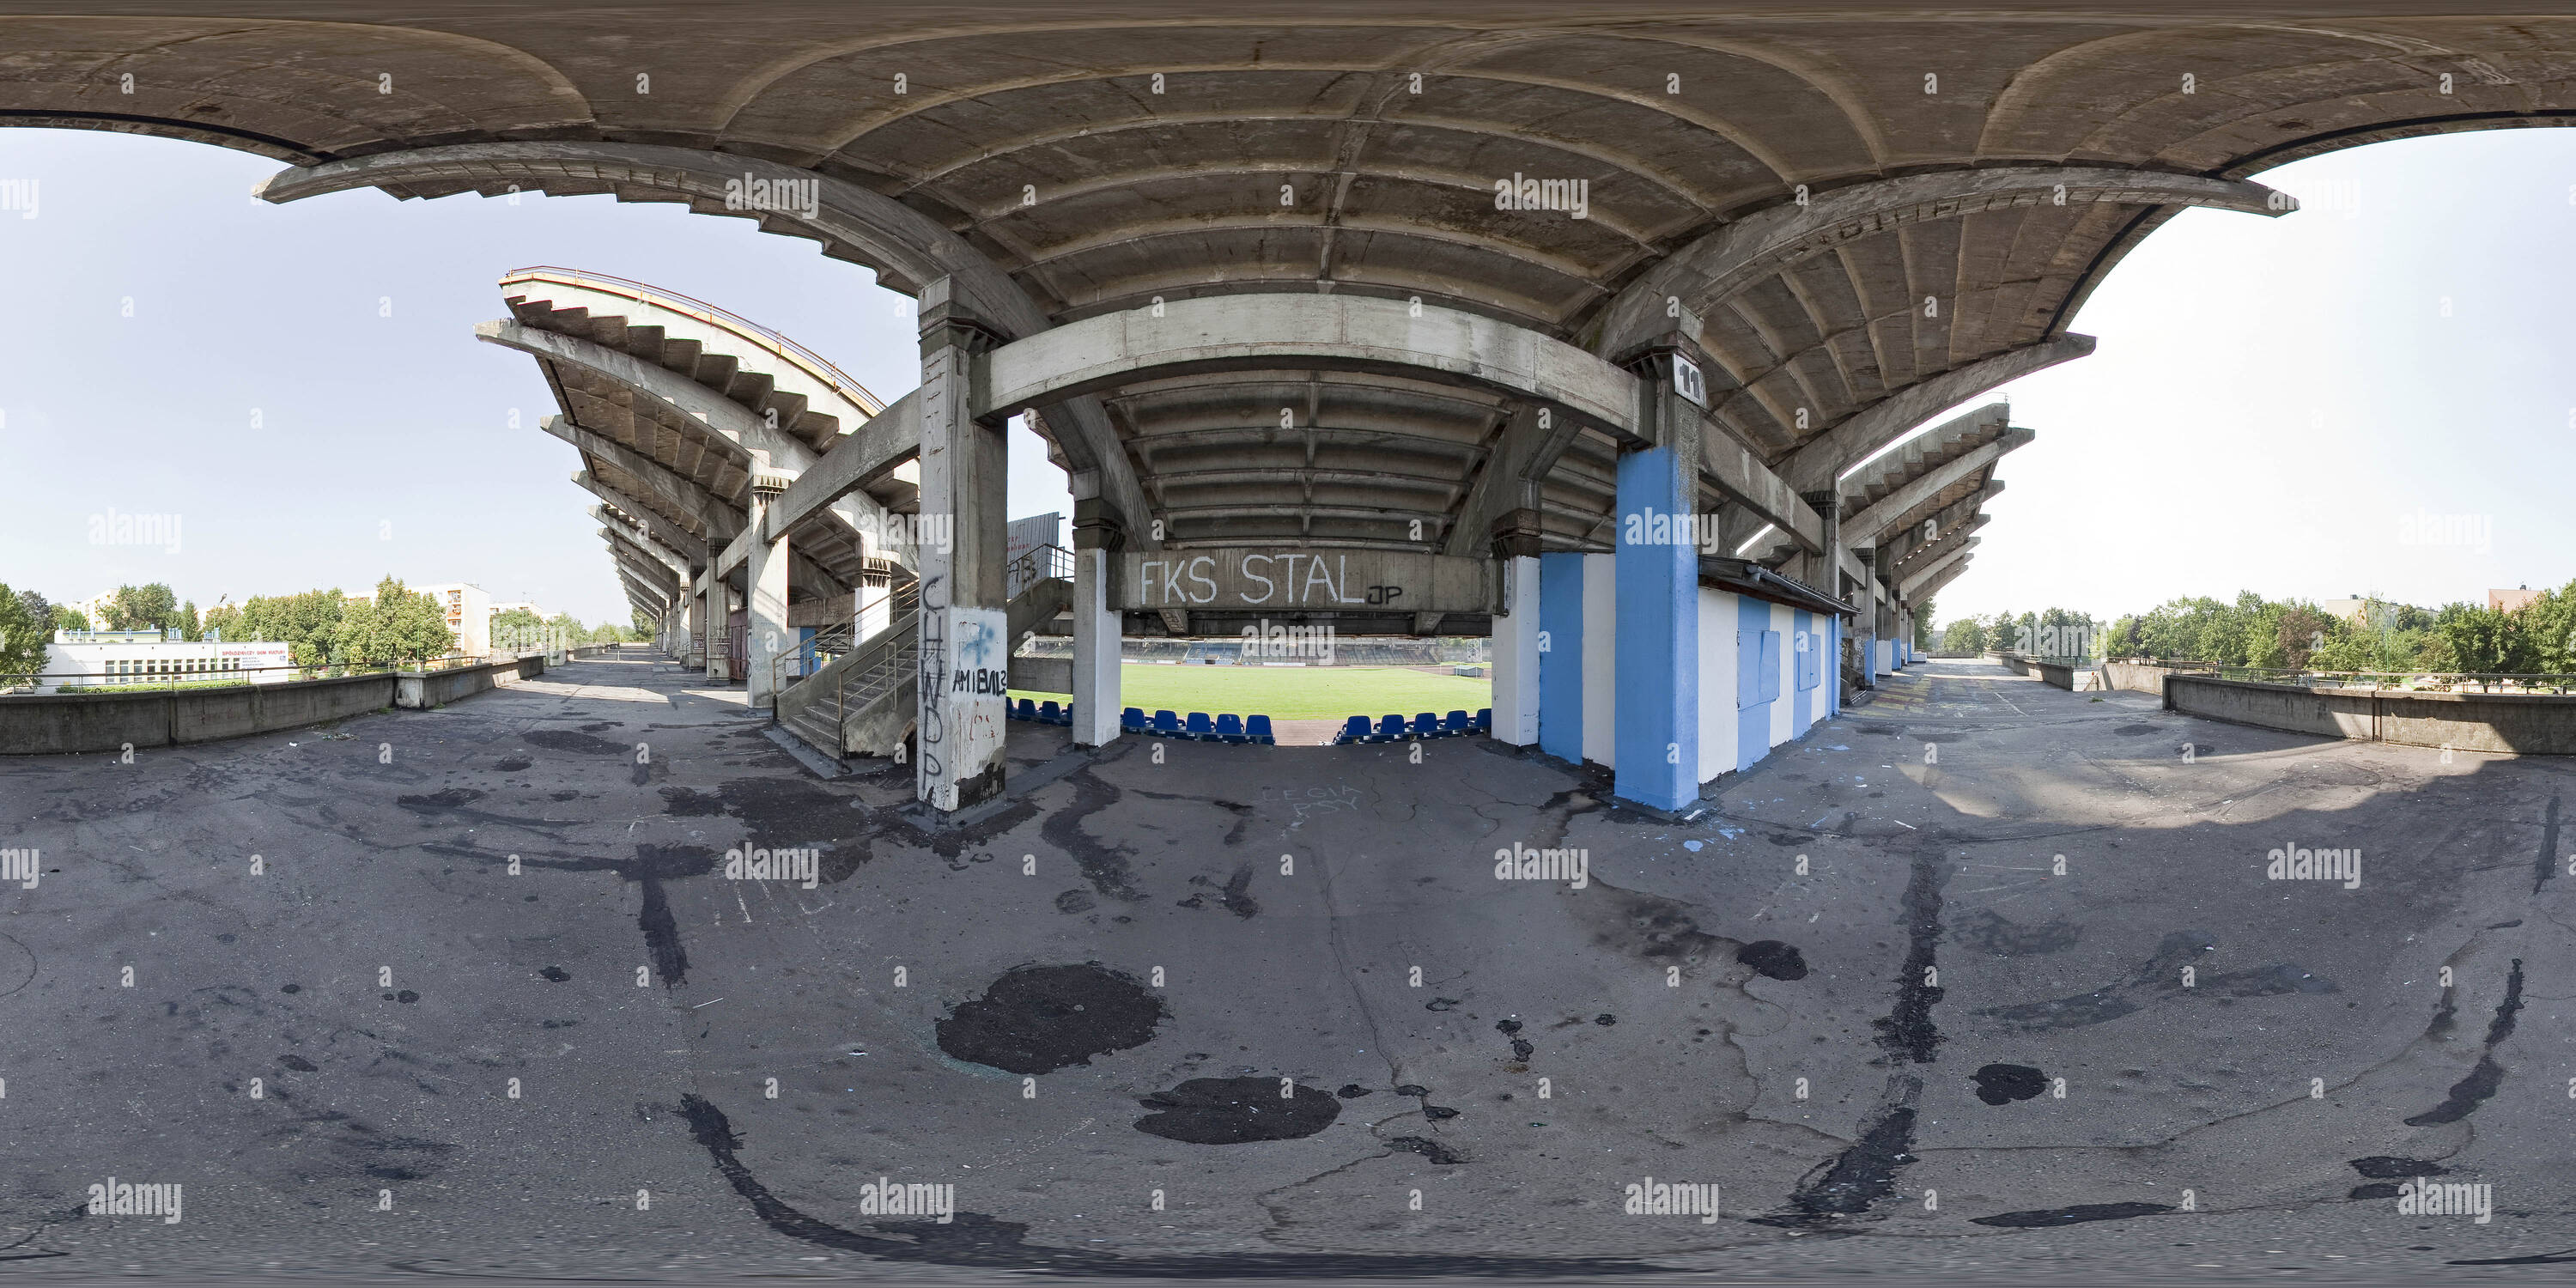 "360 degree panoramic view of ""FKS Stal Mielec"" - Old Stadium"